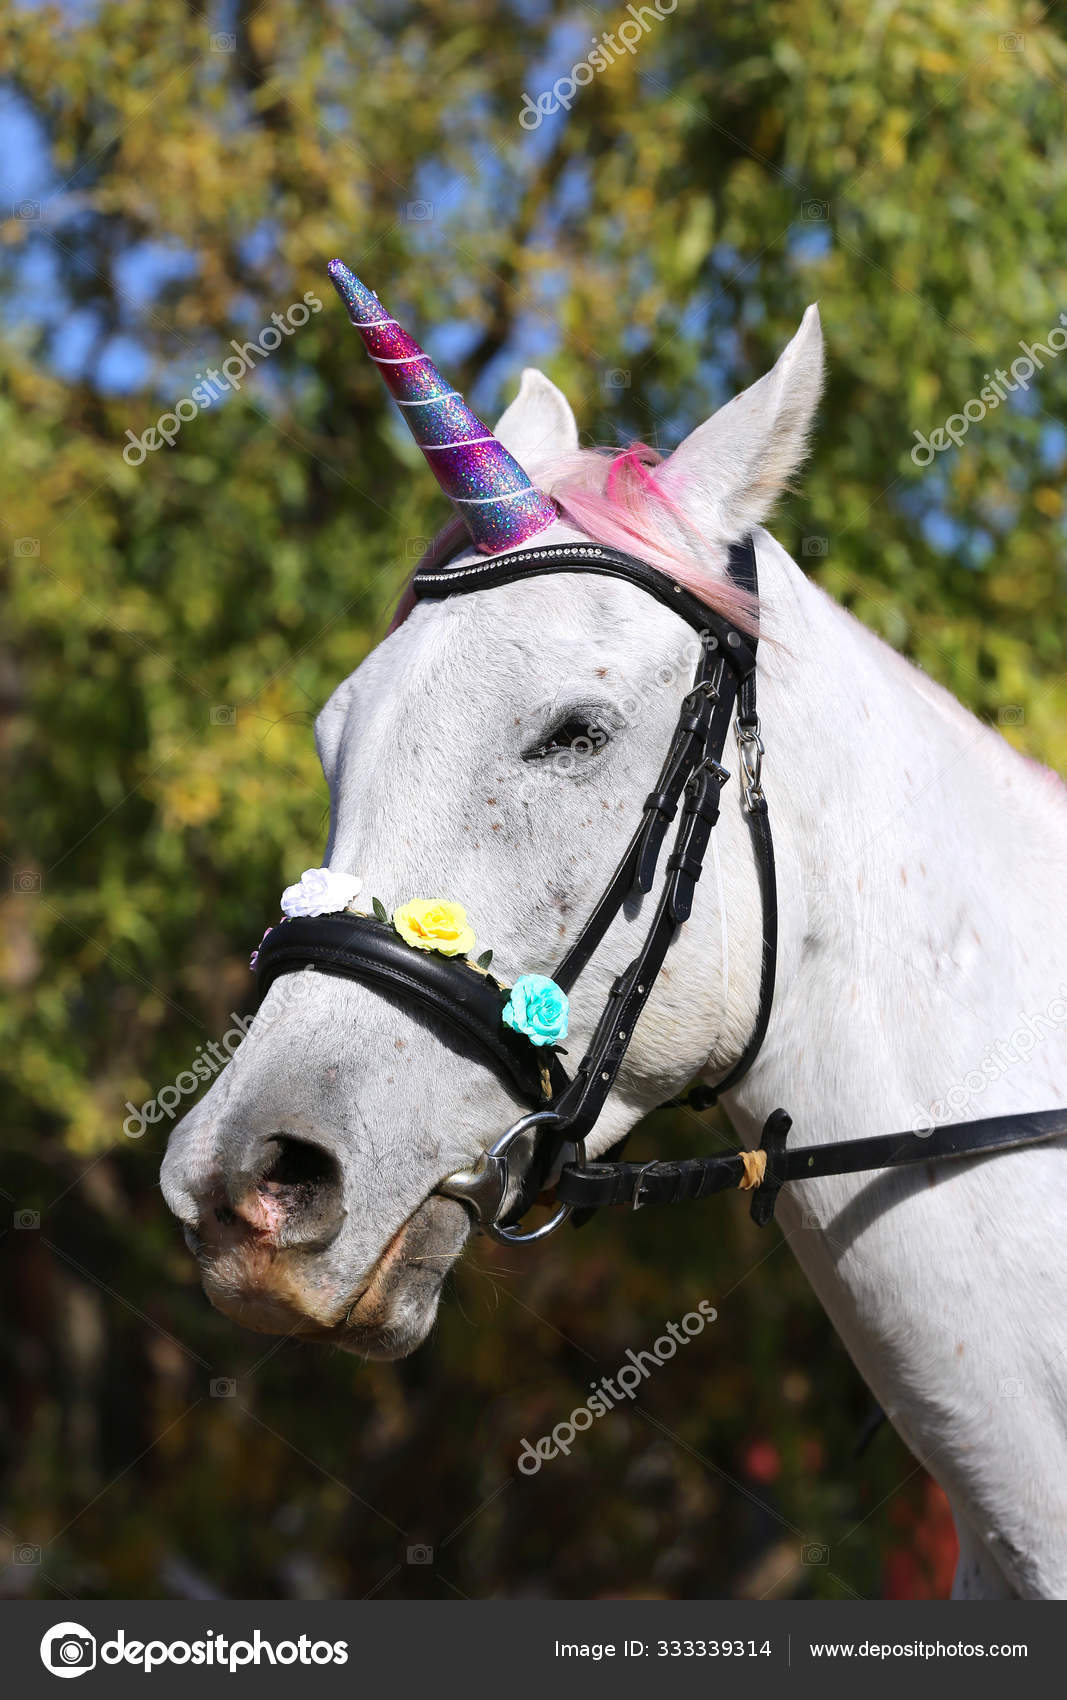 Beautiful Magical Unicorn Horse Realistic Photography Stock Photo C Accept001 333339314